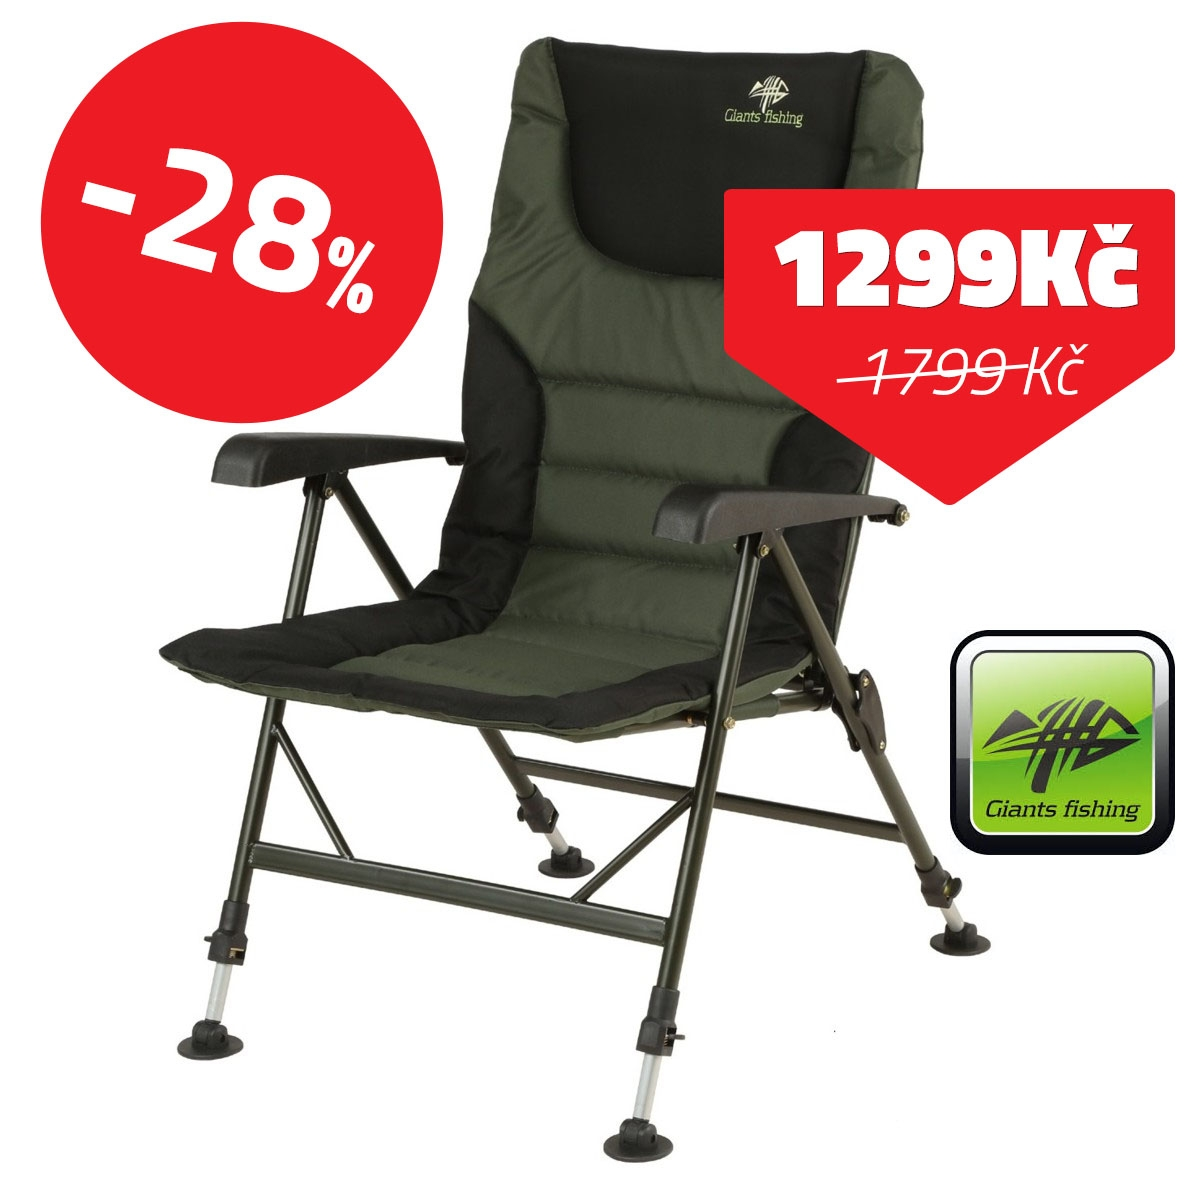 GIANTS FISHING Sedačka Komfy Plus Chair - 28% VÝPRODEJ